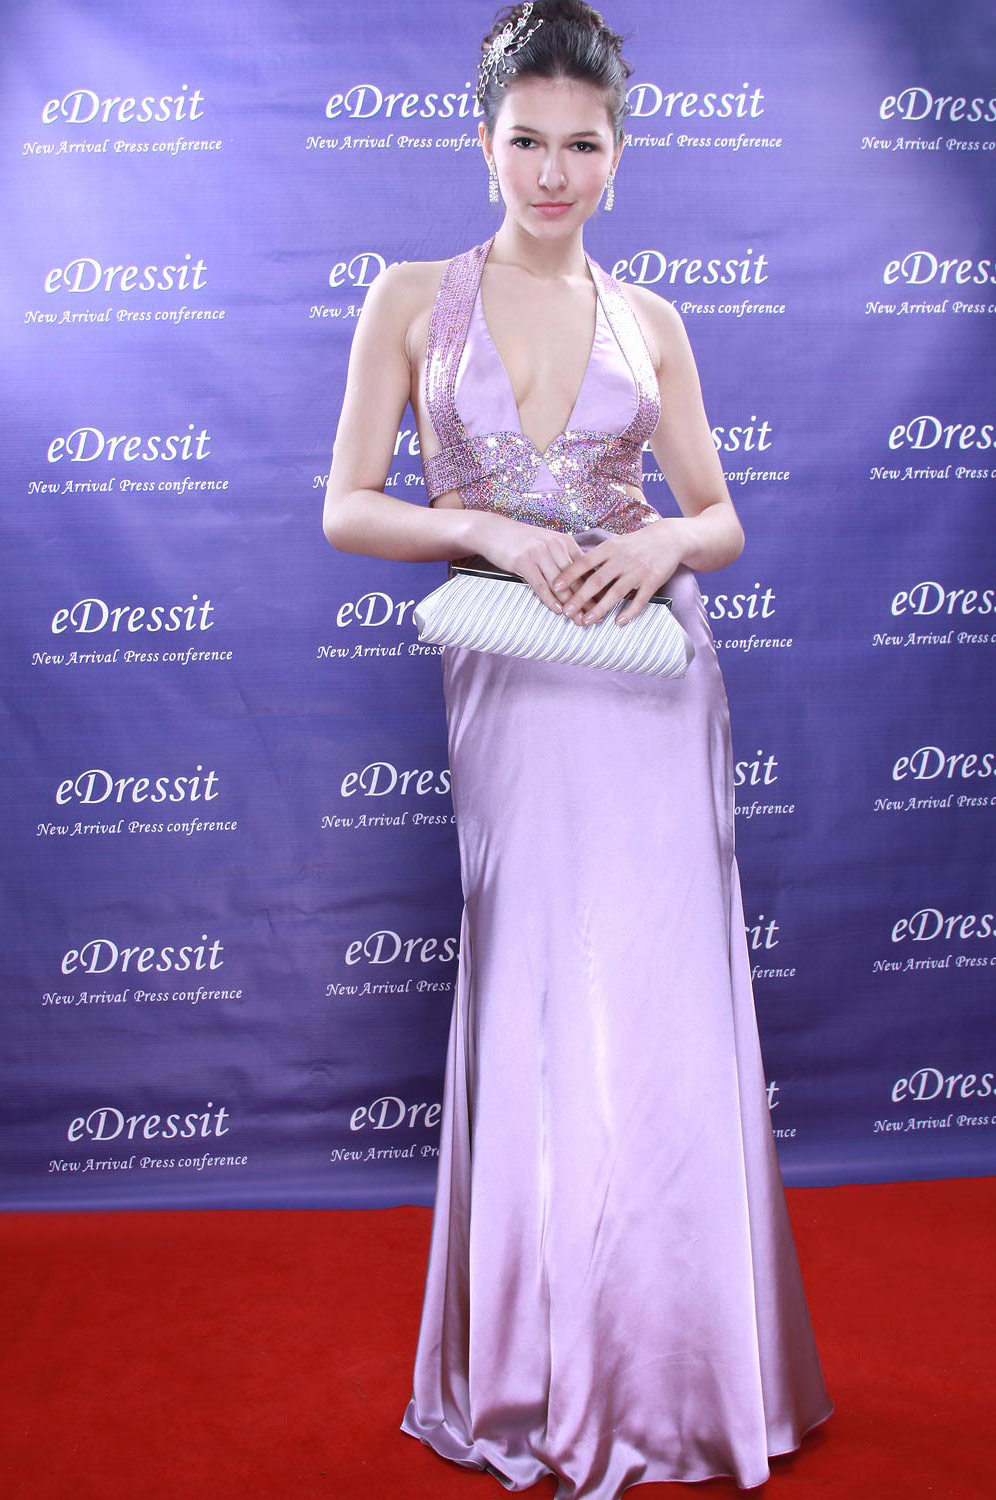 eDressit Chic Gisele Bundchen Ball Prom Gown Evening Dress (00090346)